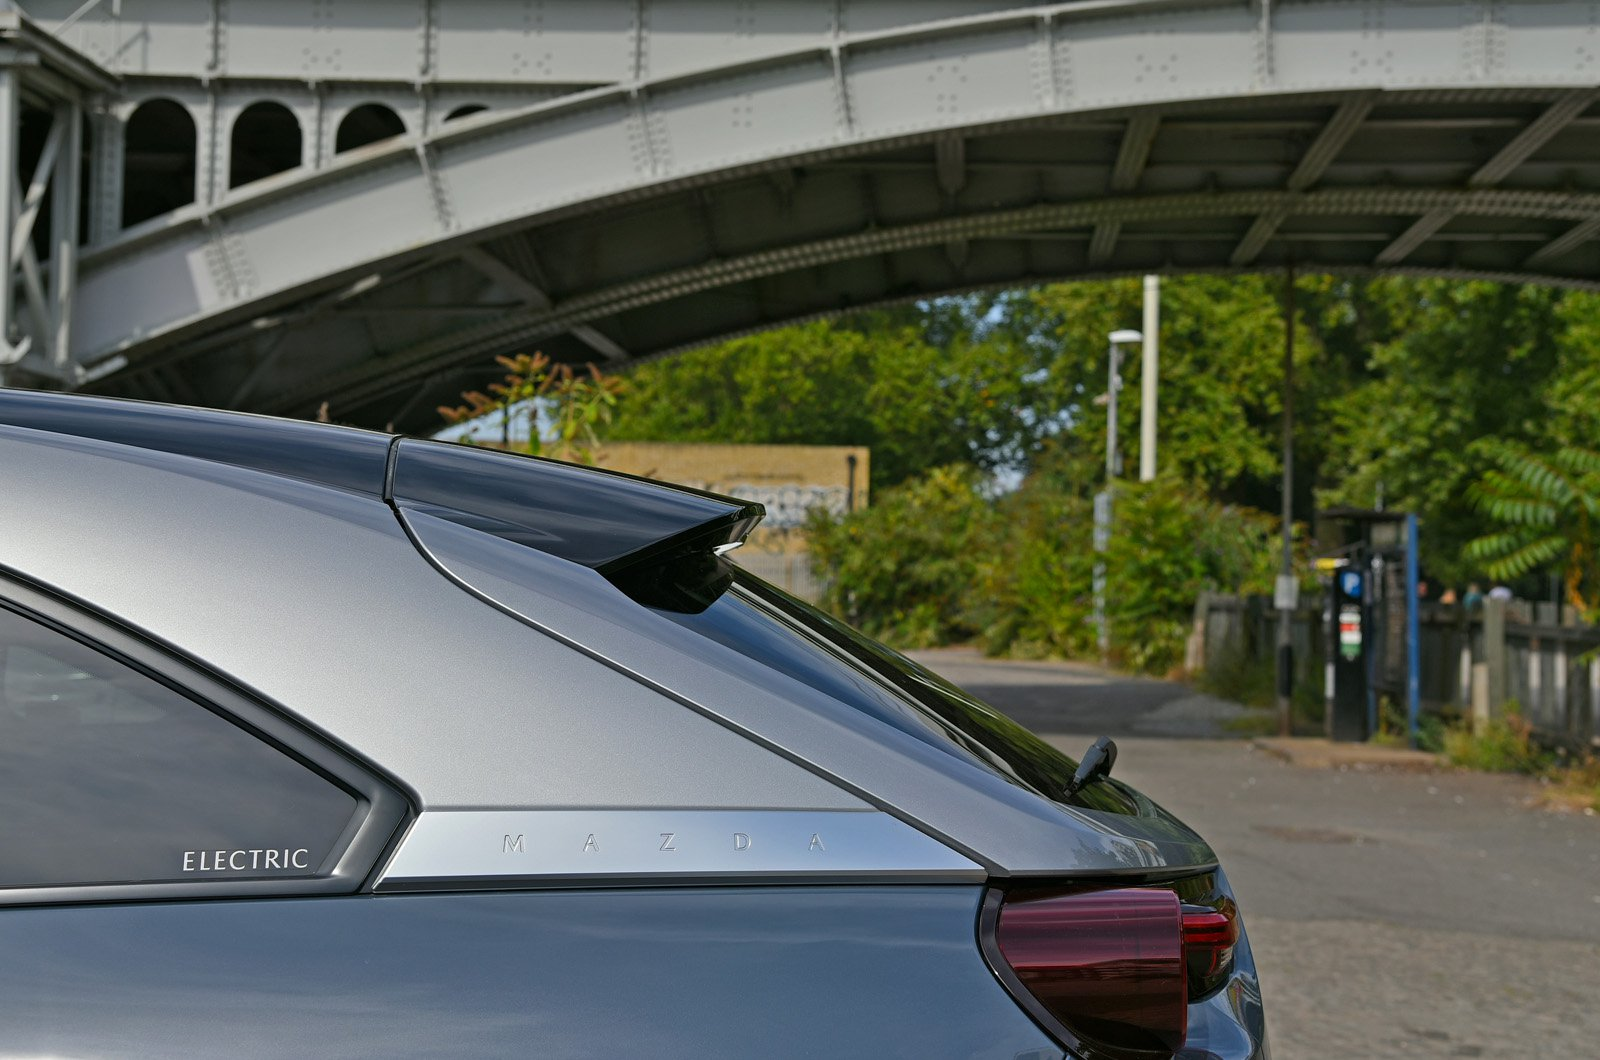 MX-30 long-term rear glass and lines